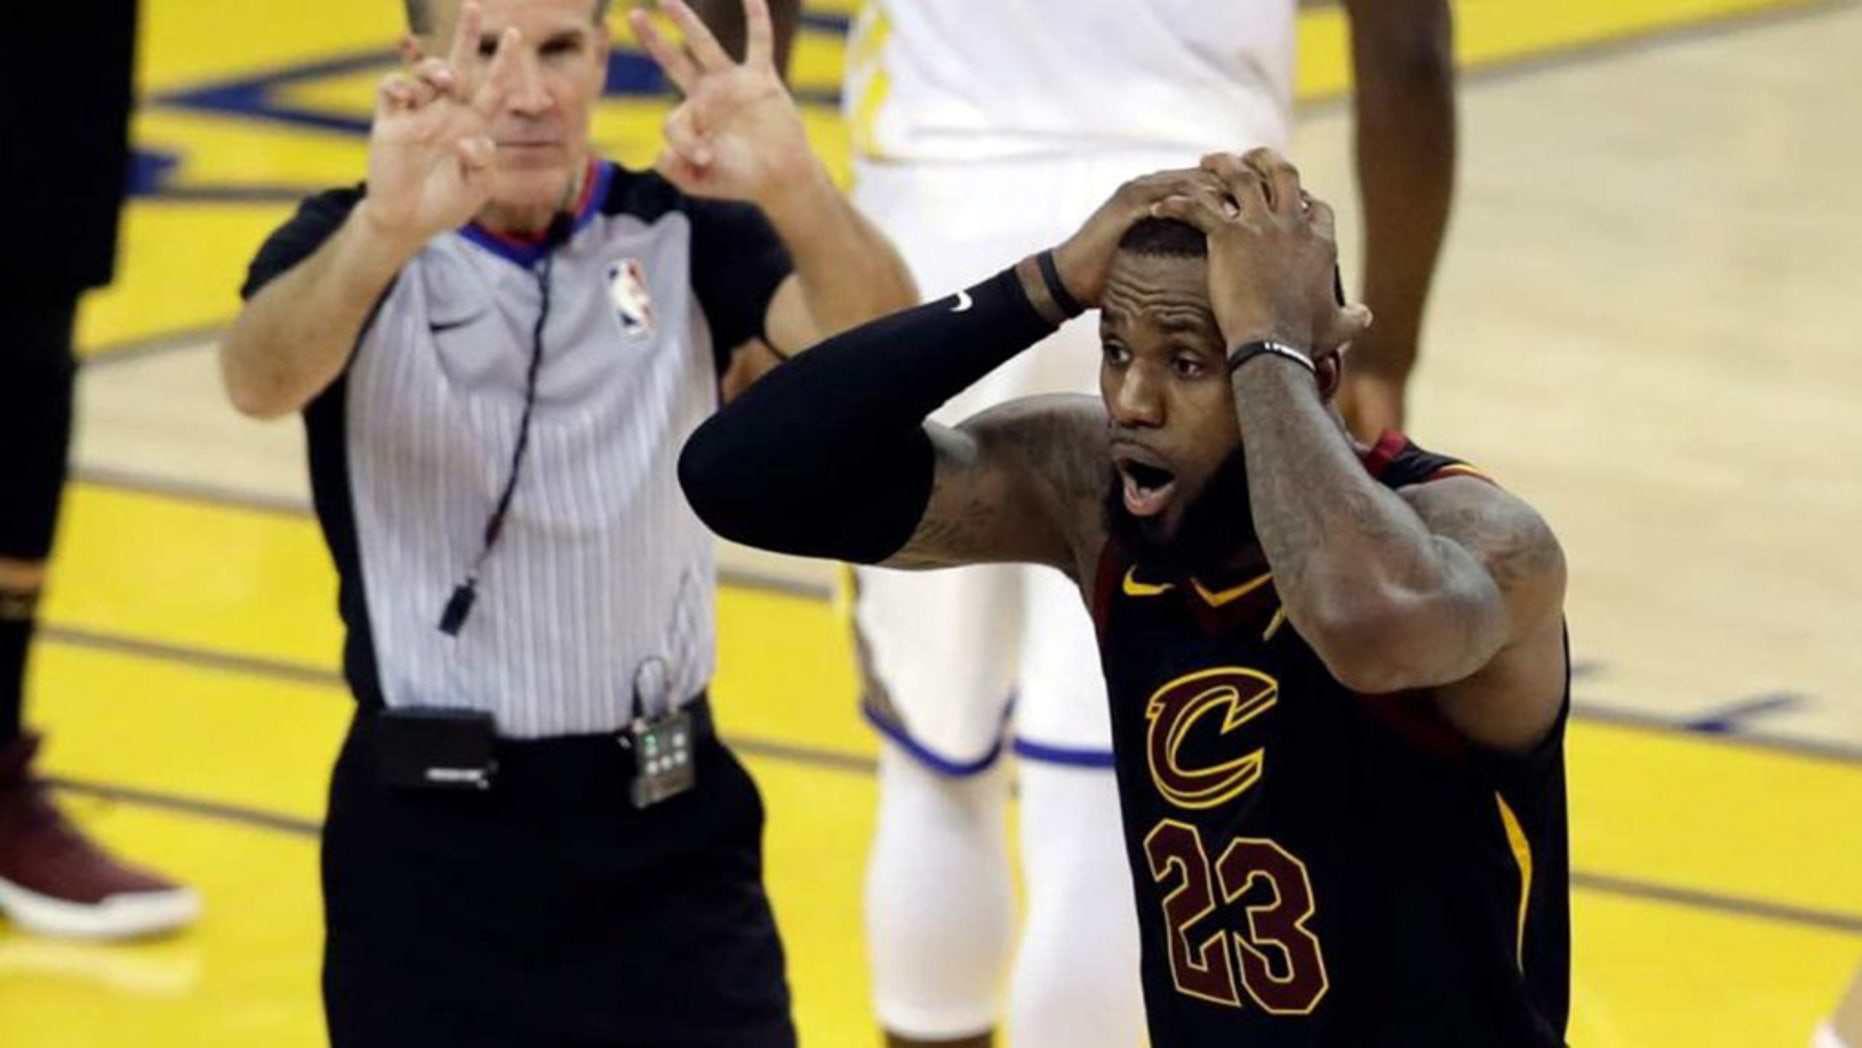 Cleveland's LeBron James was in utter disbelief at the end of regulation play in Game 1, as the Cavaliers missed an opportunity to win the game, in Oakland, Calif., May 31, 2018.